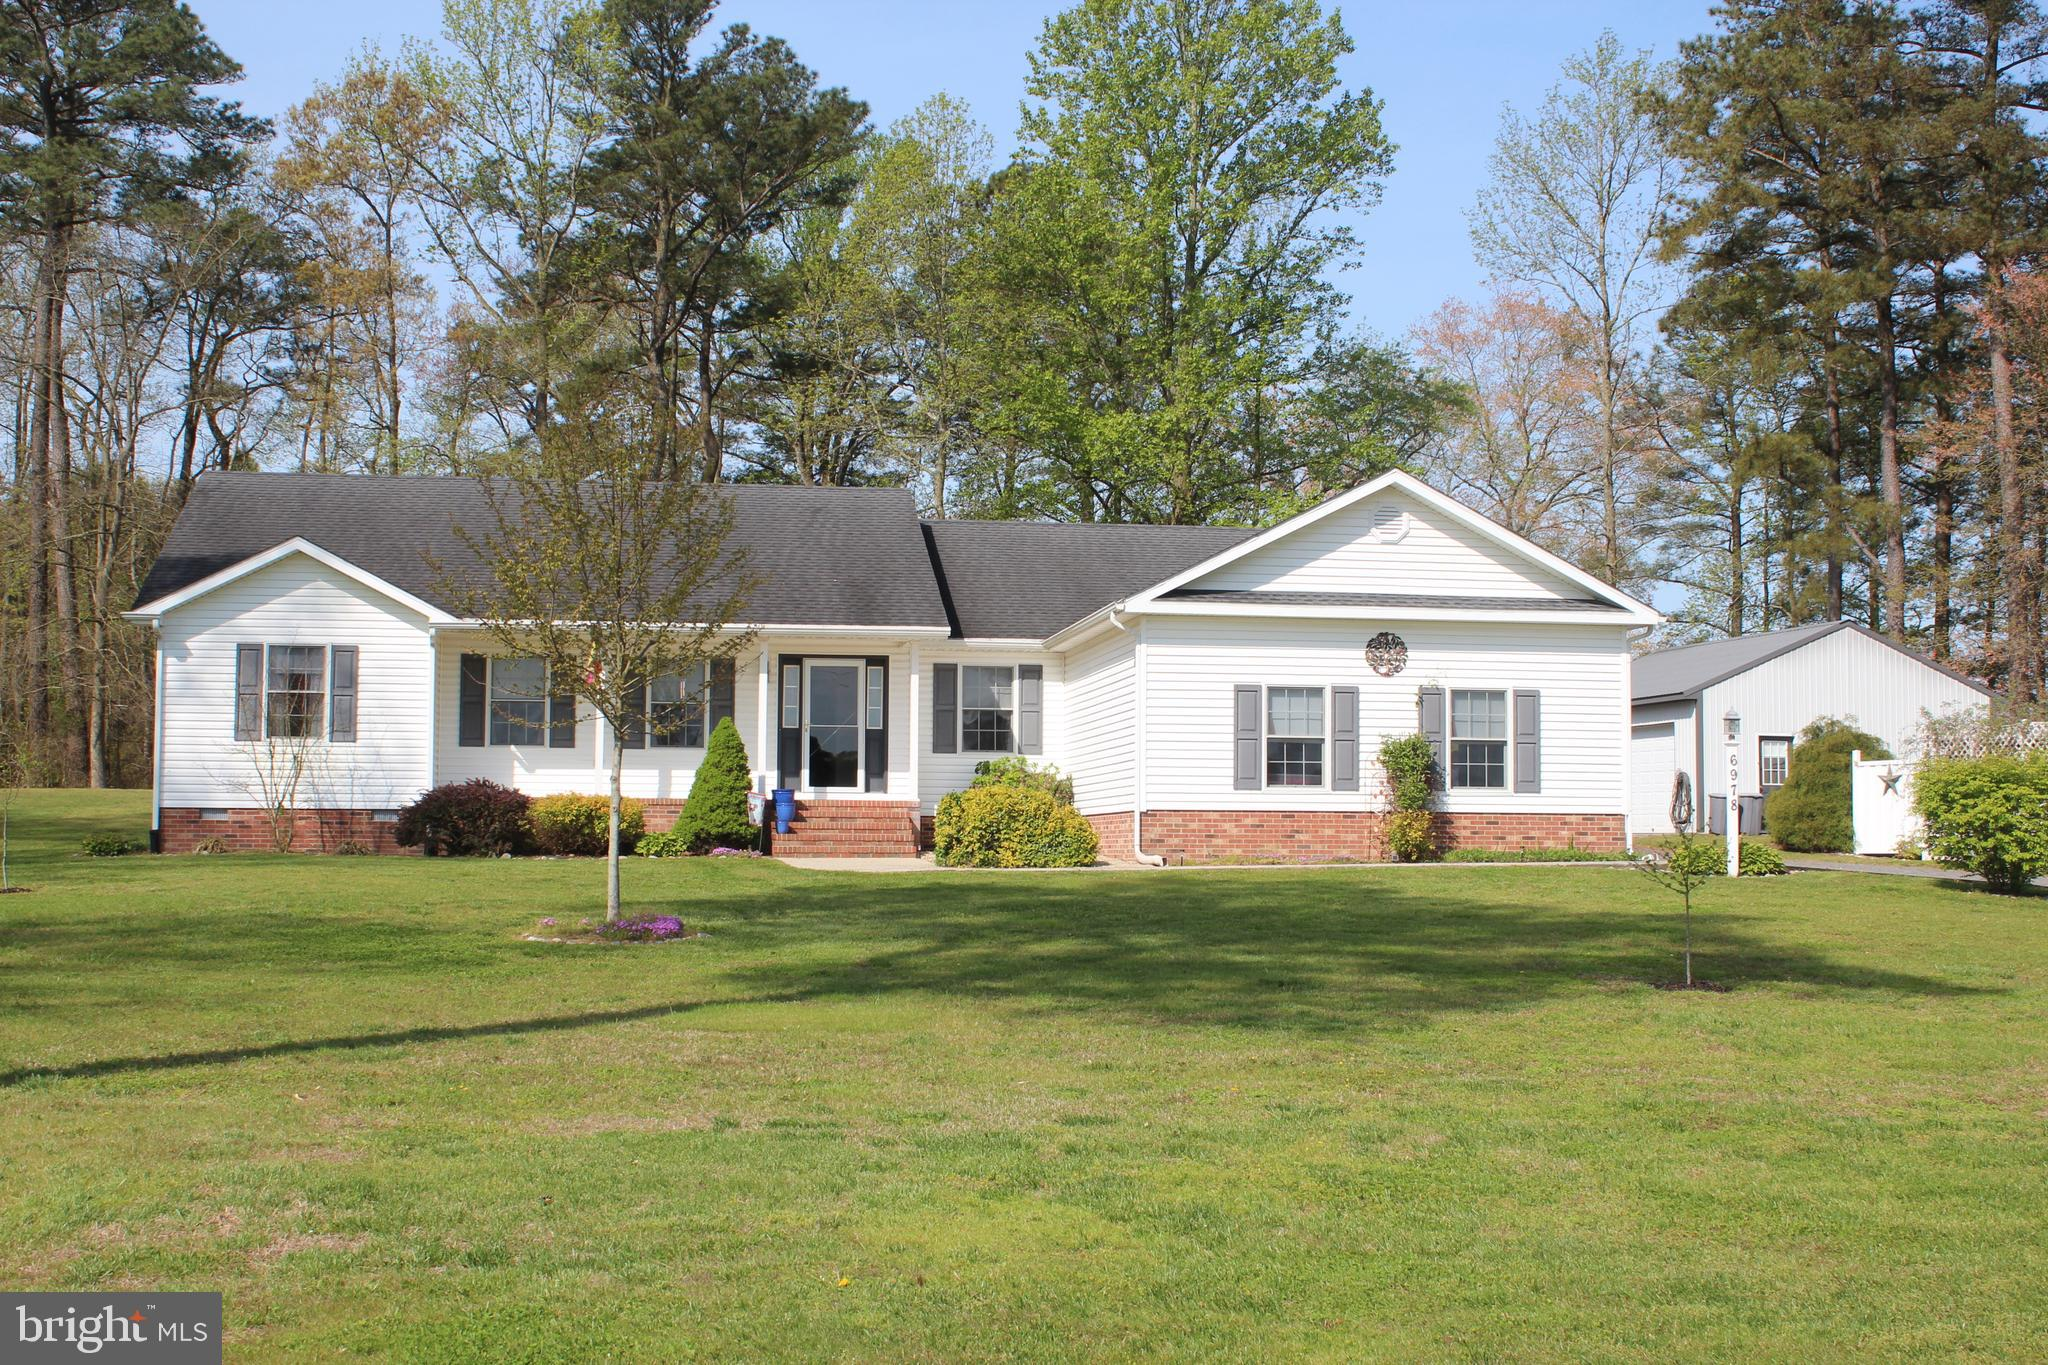 6978 Morris Road, Pittsville, MD 21850